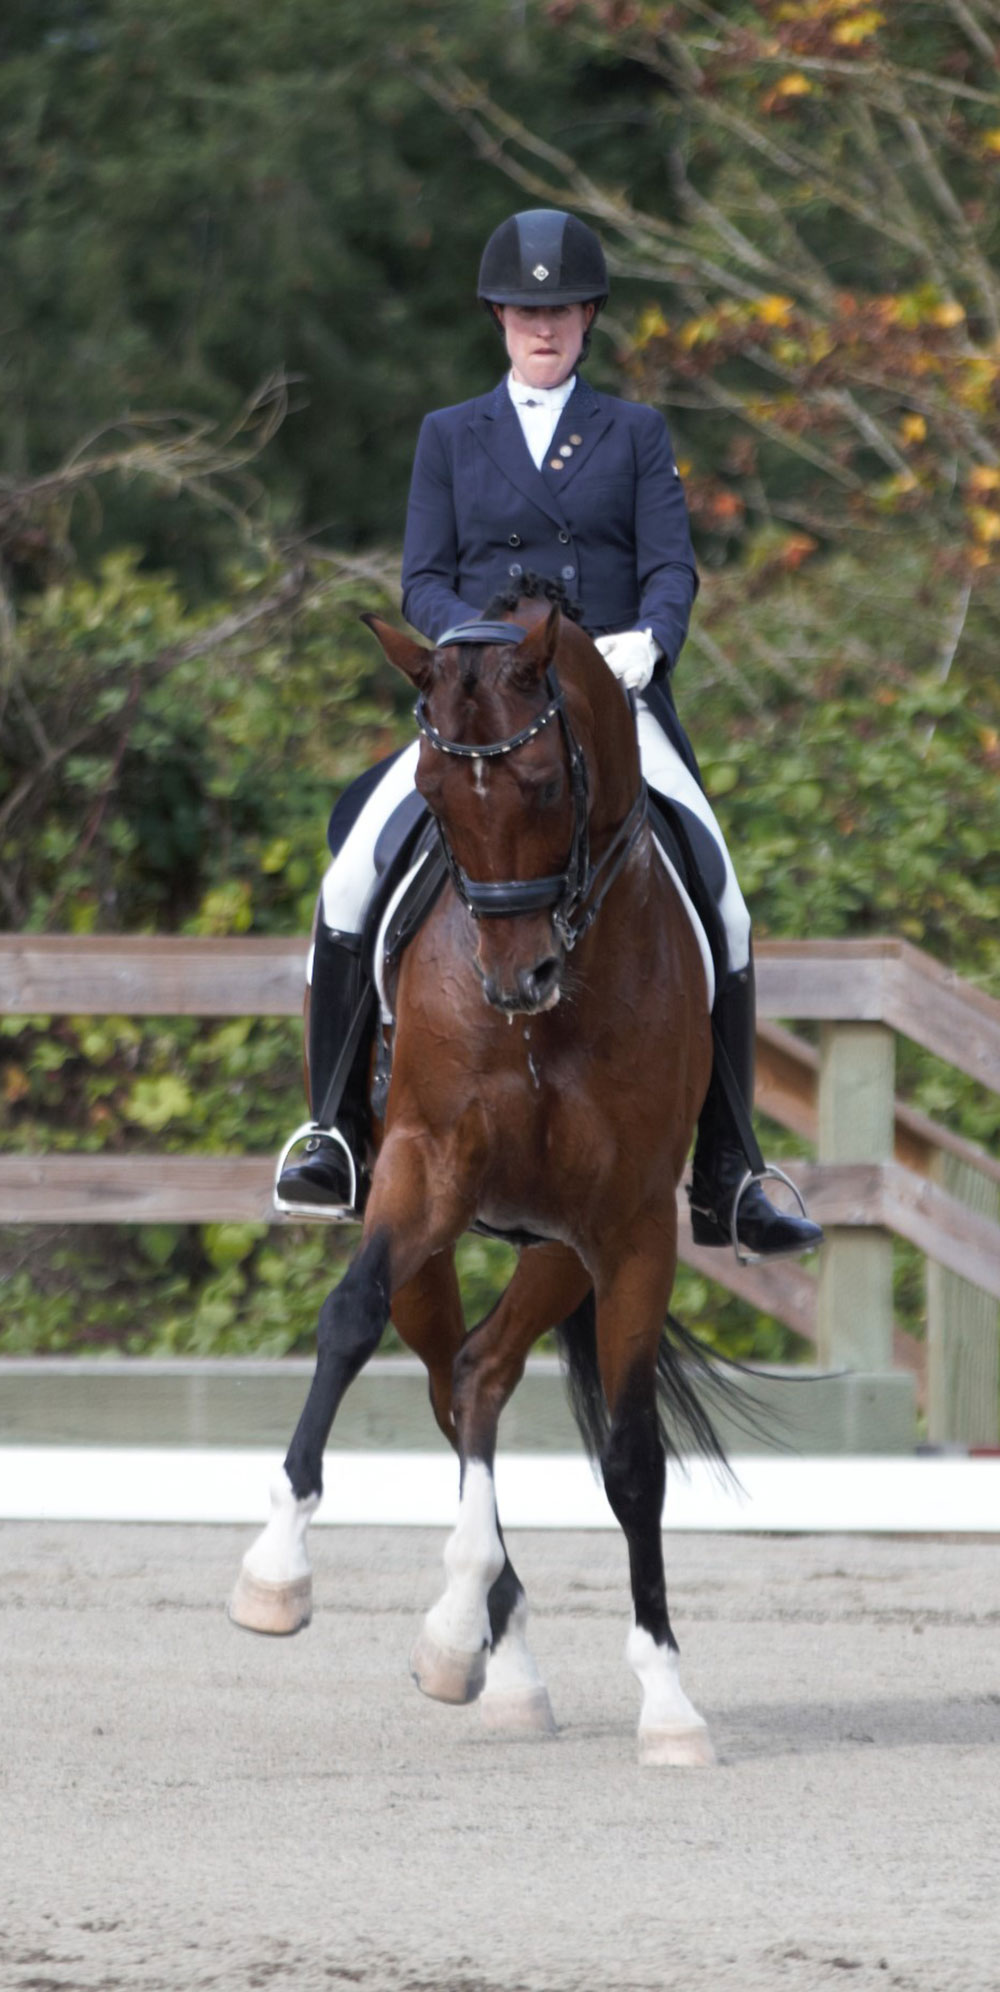 The Source for Elite American Dressage Horses